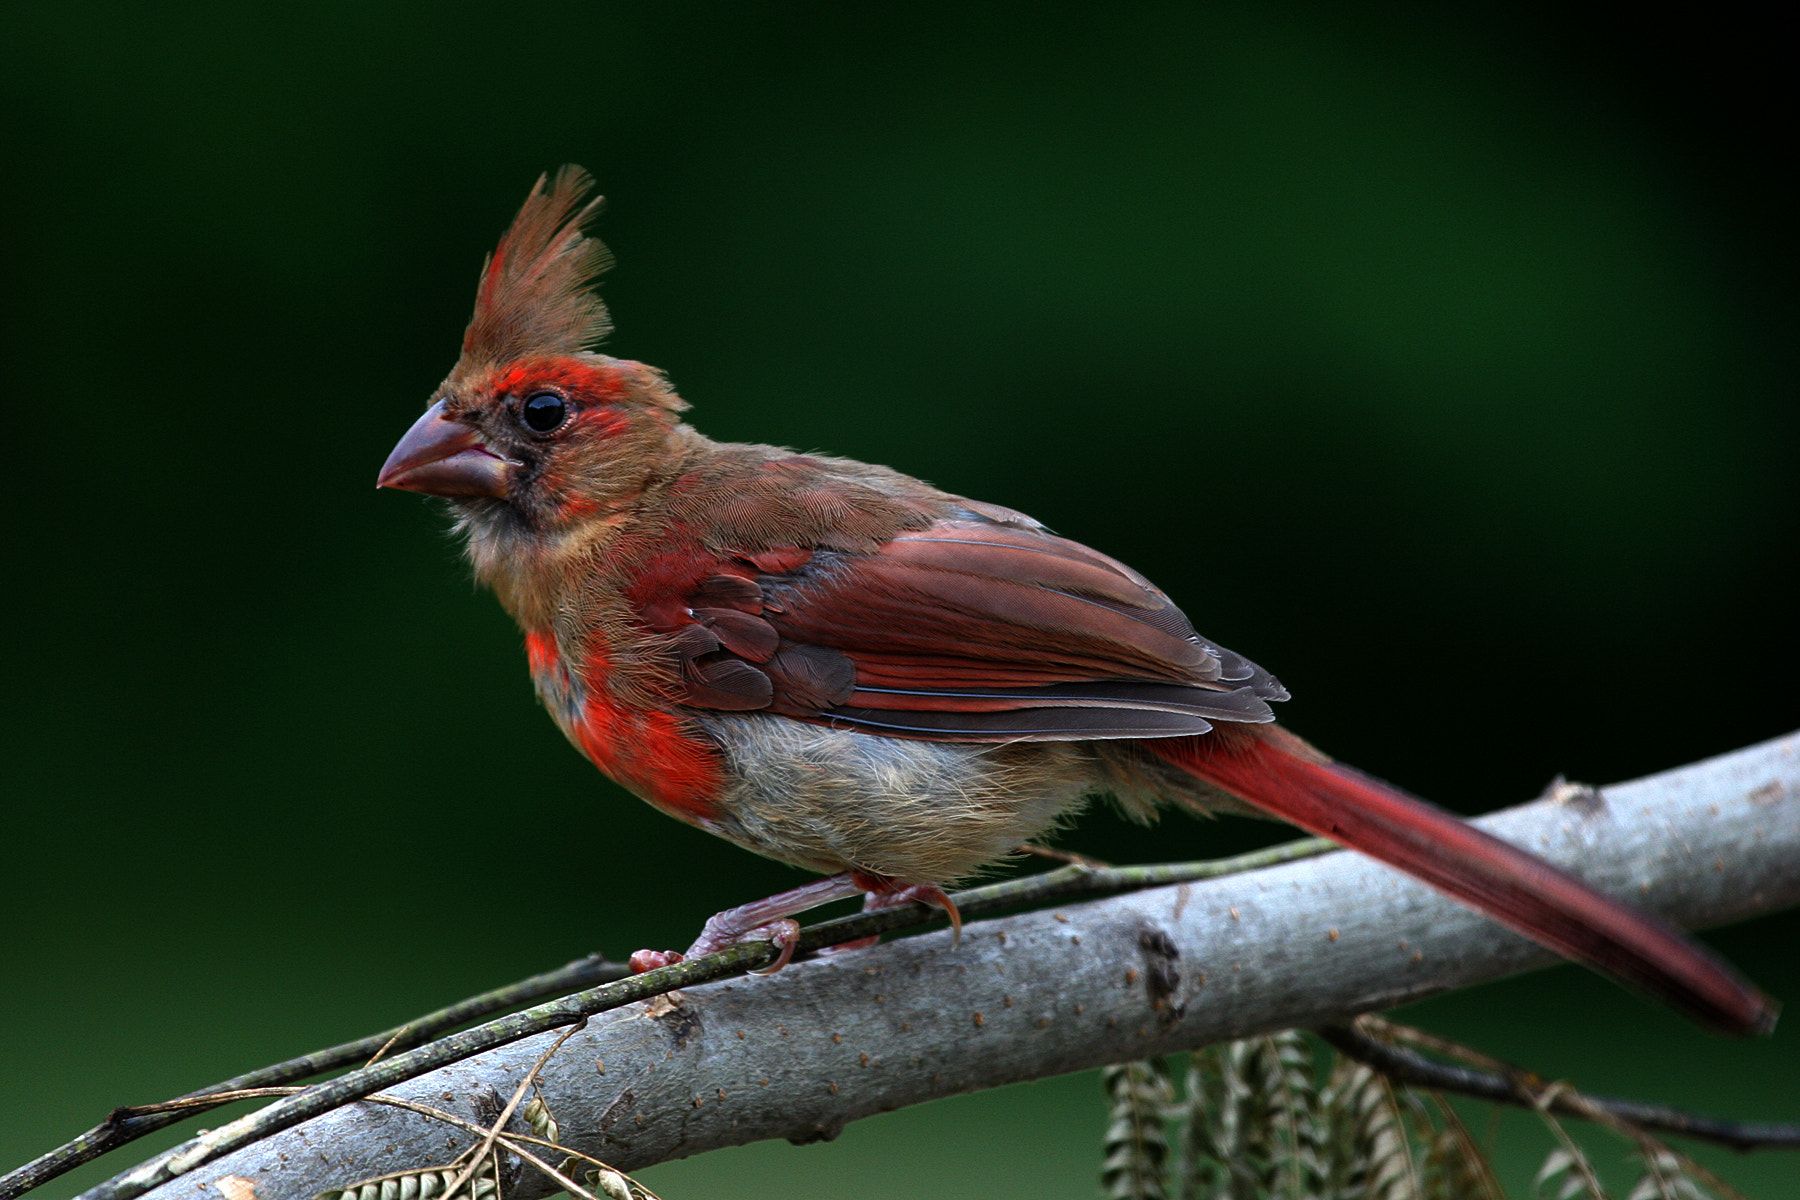 Photograph Juvenile Northern Cardinal by Rusty Wood on 500px